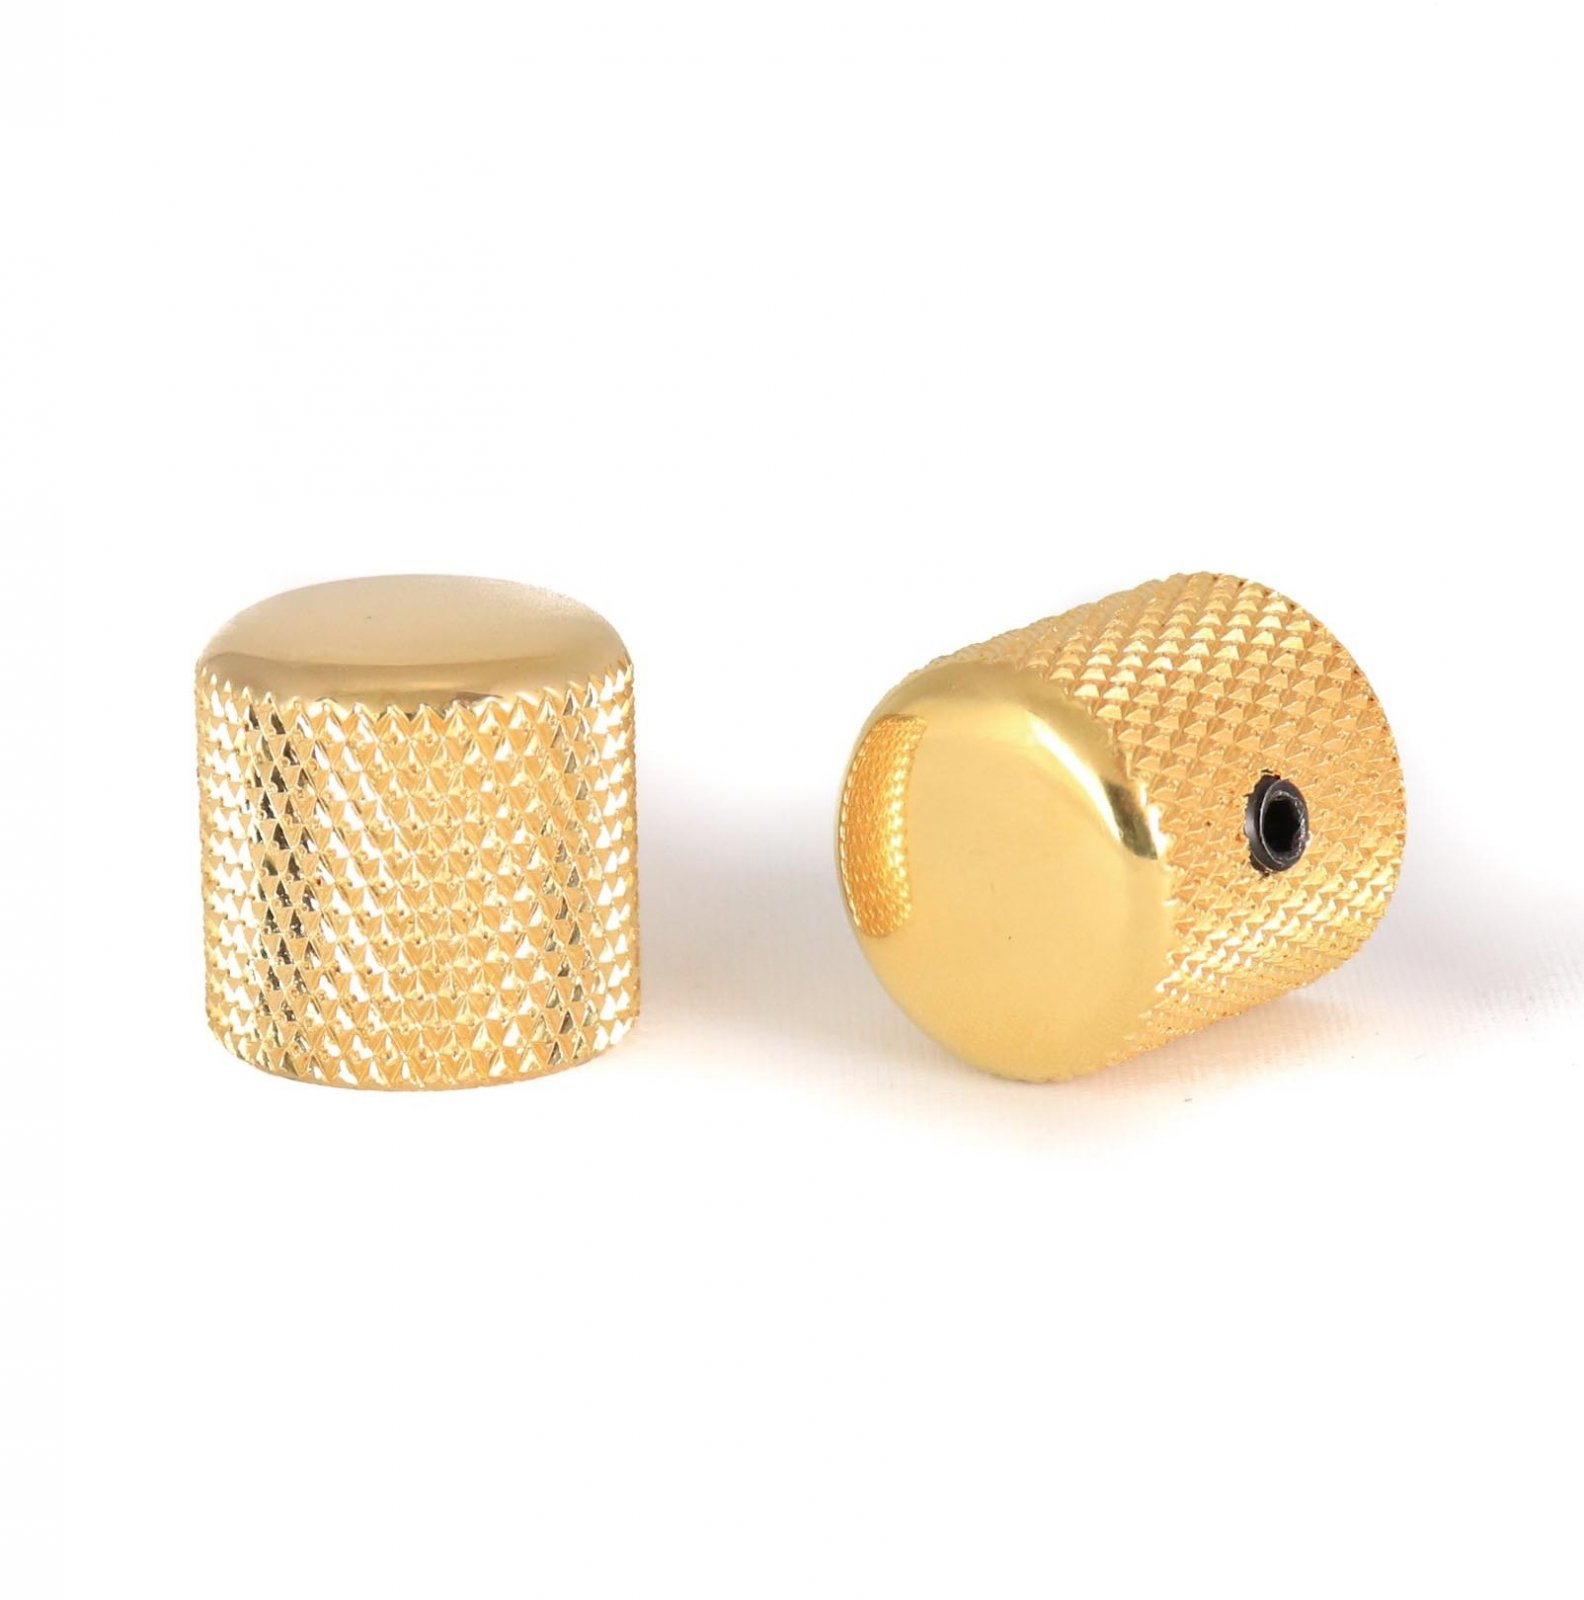 MannMade USA Knob Knurled Dome Top - Gold